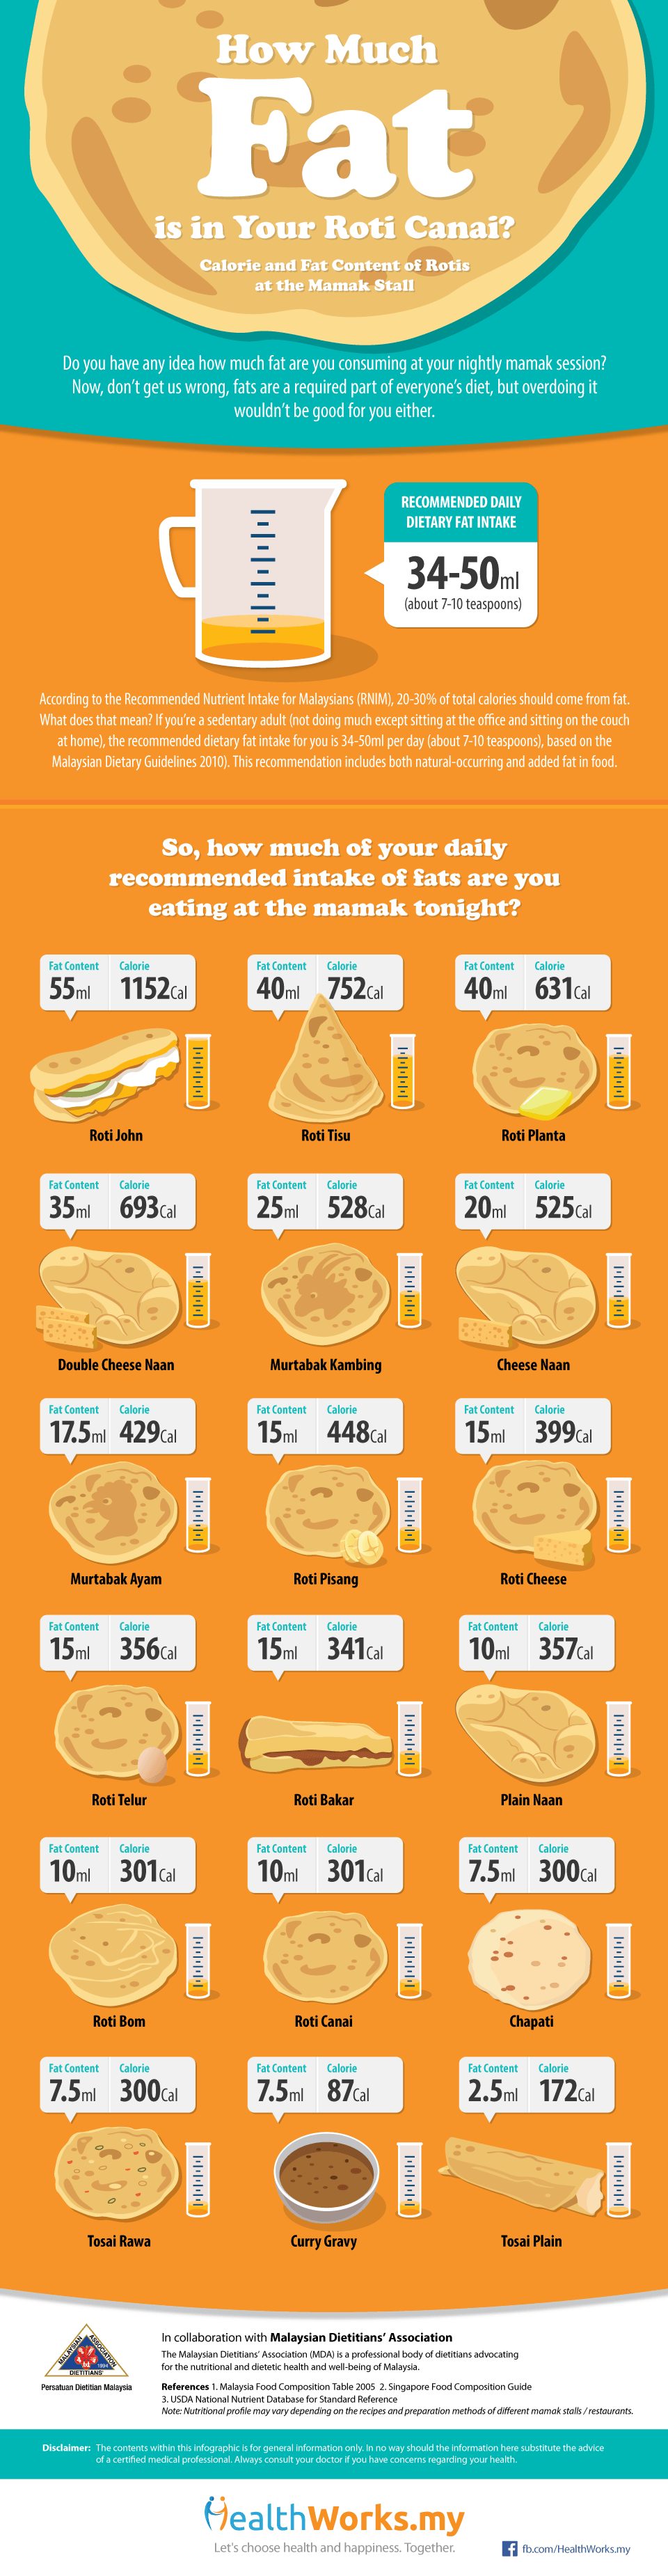 How Much Fat is In Your Roti Canai Mamak Infographic